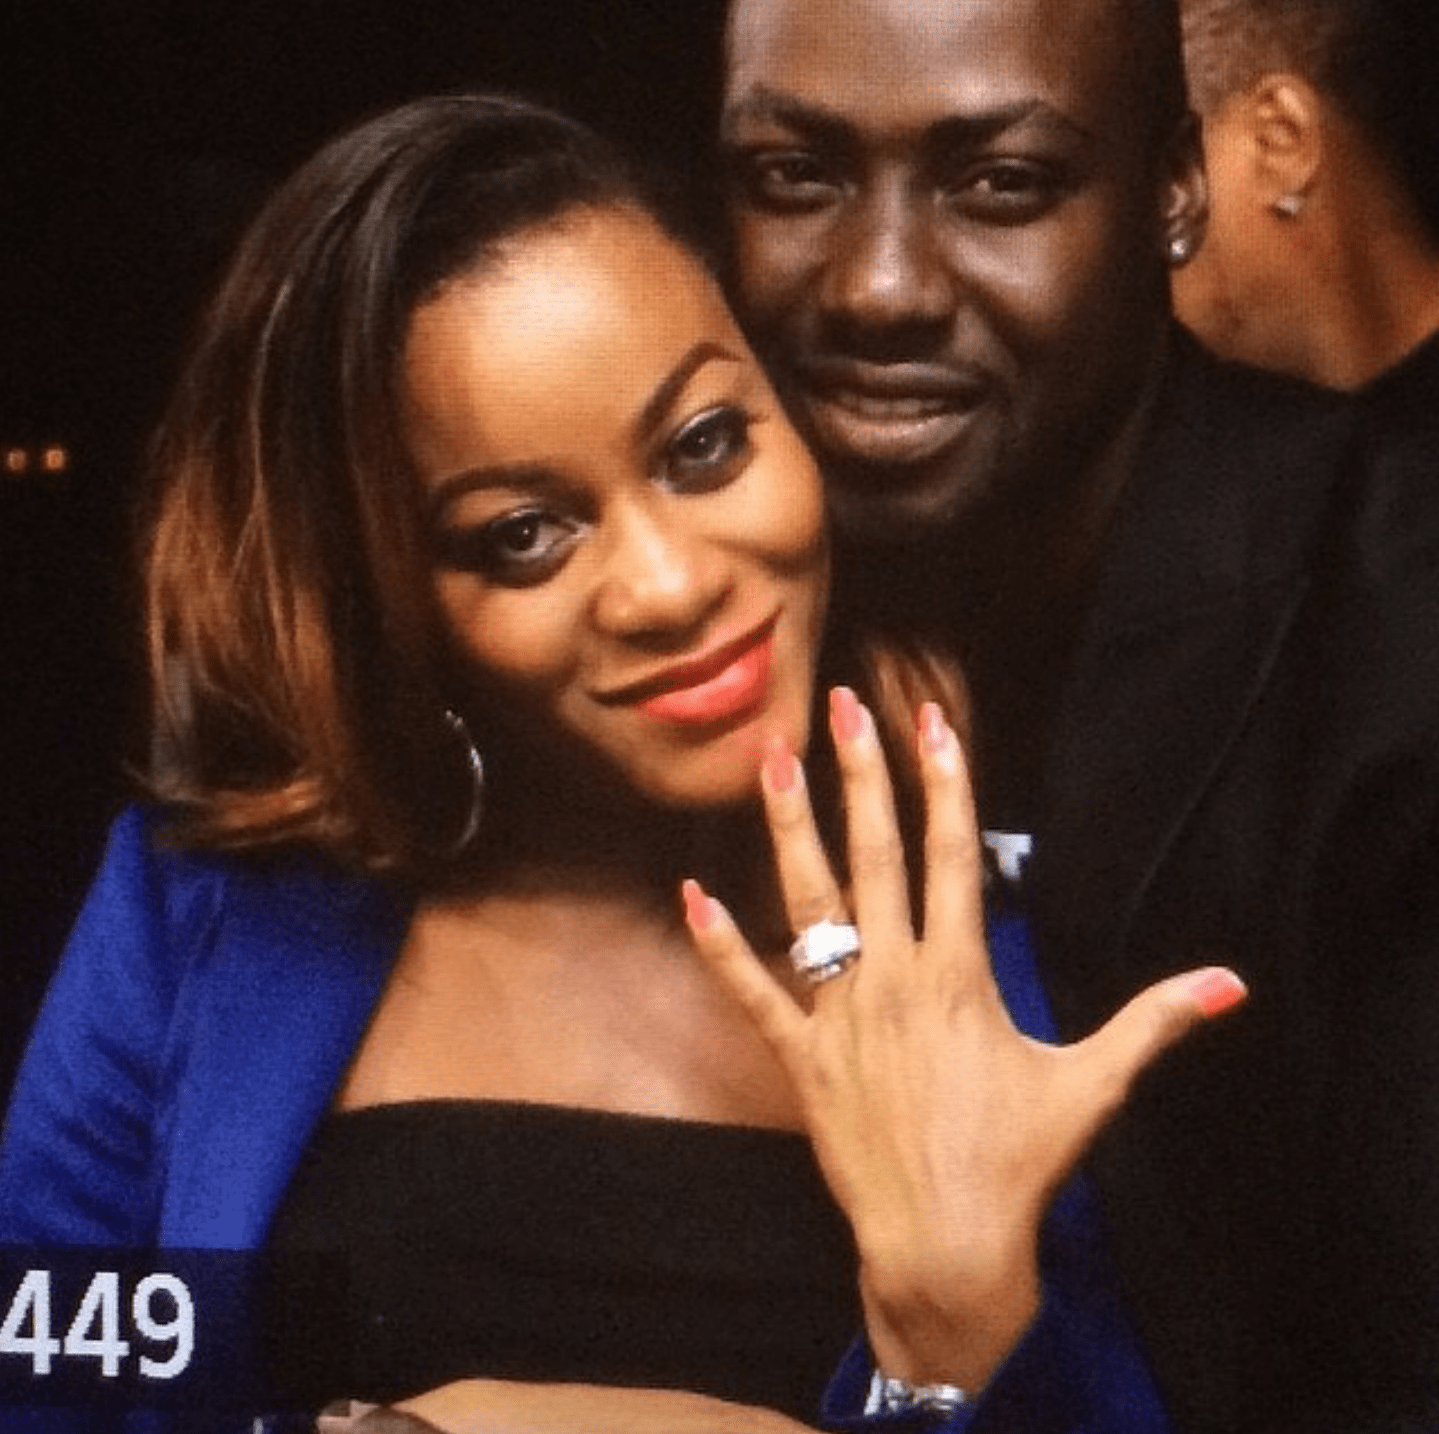 Divorce or No Divorce? Chris Attoh Chats About His Relationship With Wifey Damilola